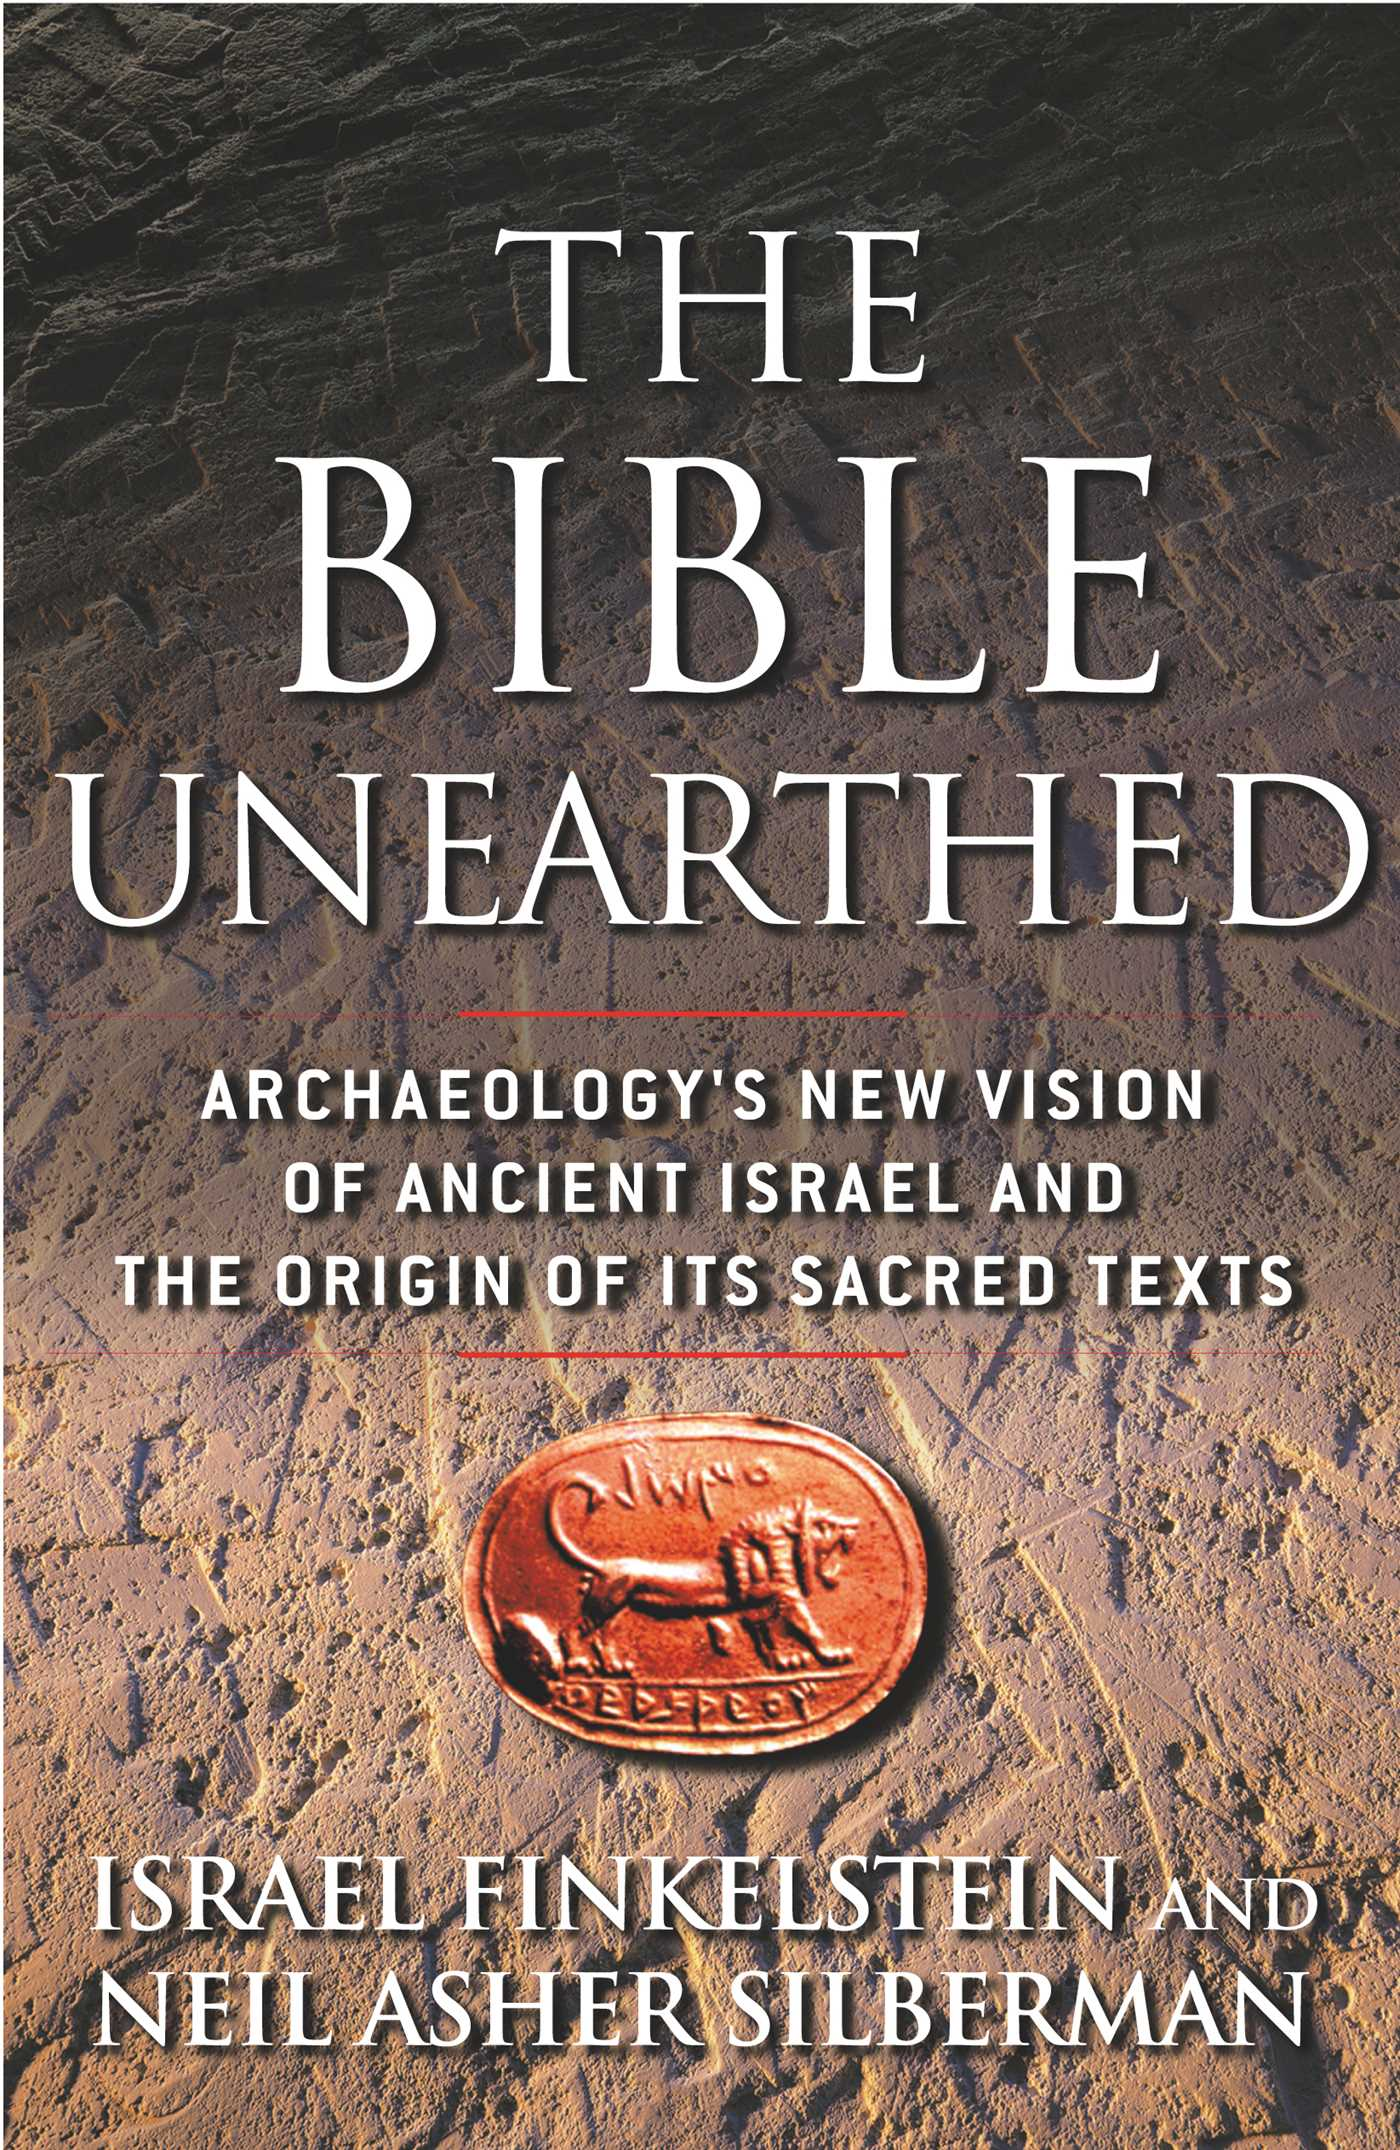 The-bible-unearthed-9780743223386_hr